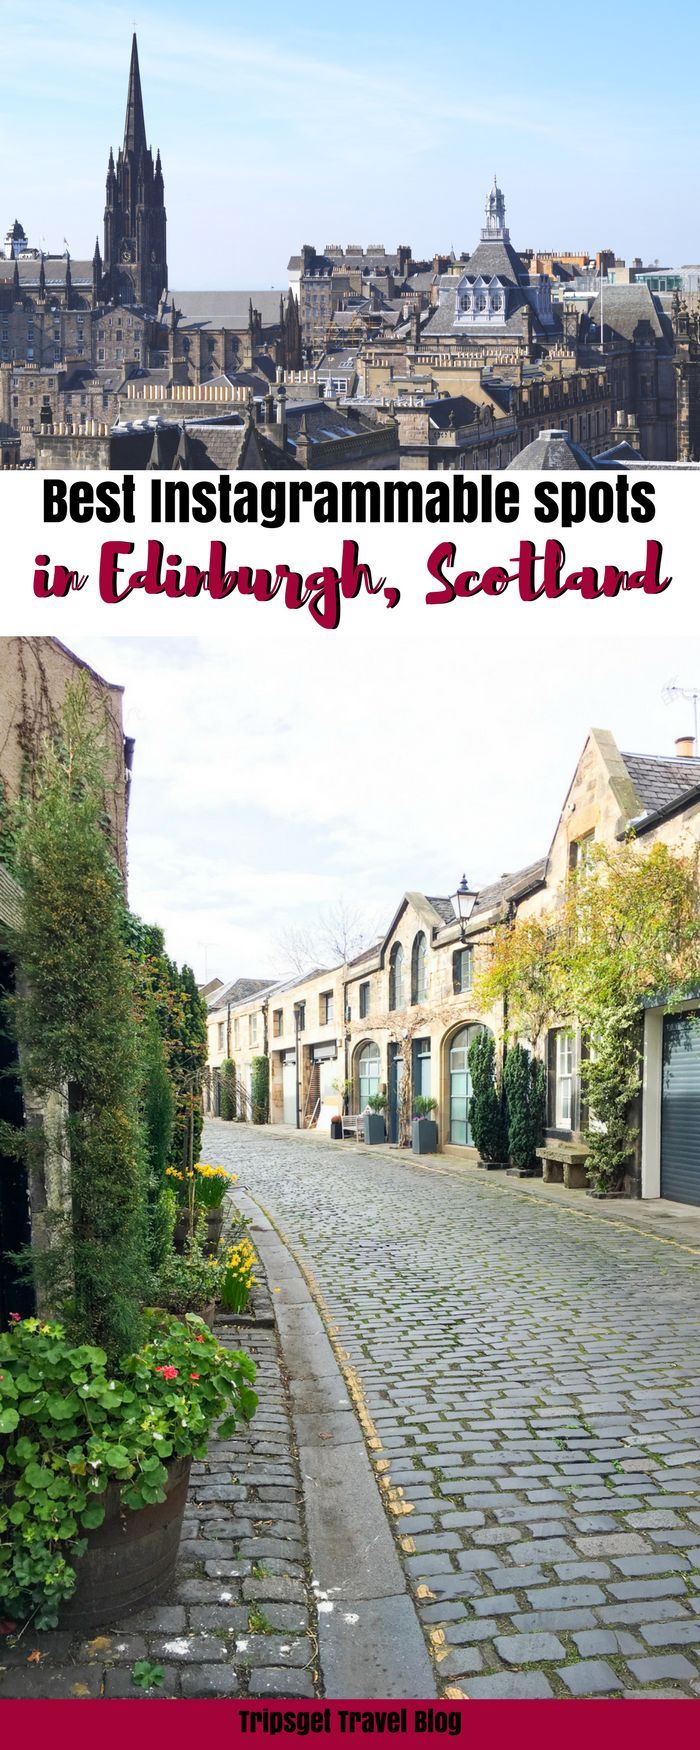 Looking for the best Instagrammable spots in Edinburgh, Scotland? You're in the right place, keep reading! Royal Mile, Calton Hill, Arthur's Seat, Edinburgh cute cafes, Edinburgh brunch spots, Instagrammable places in Scotland, UK, London, Cherry Blossom,